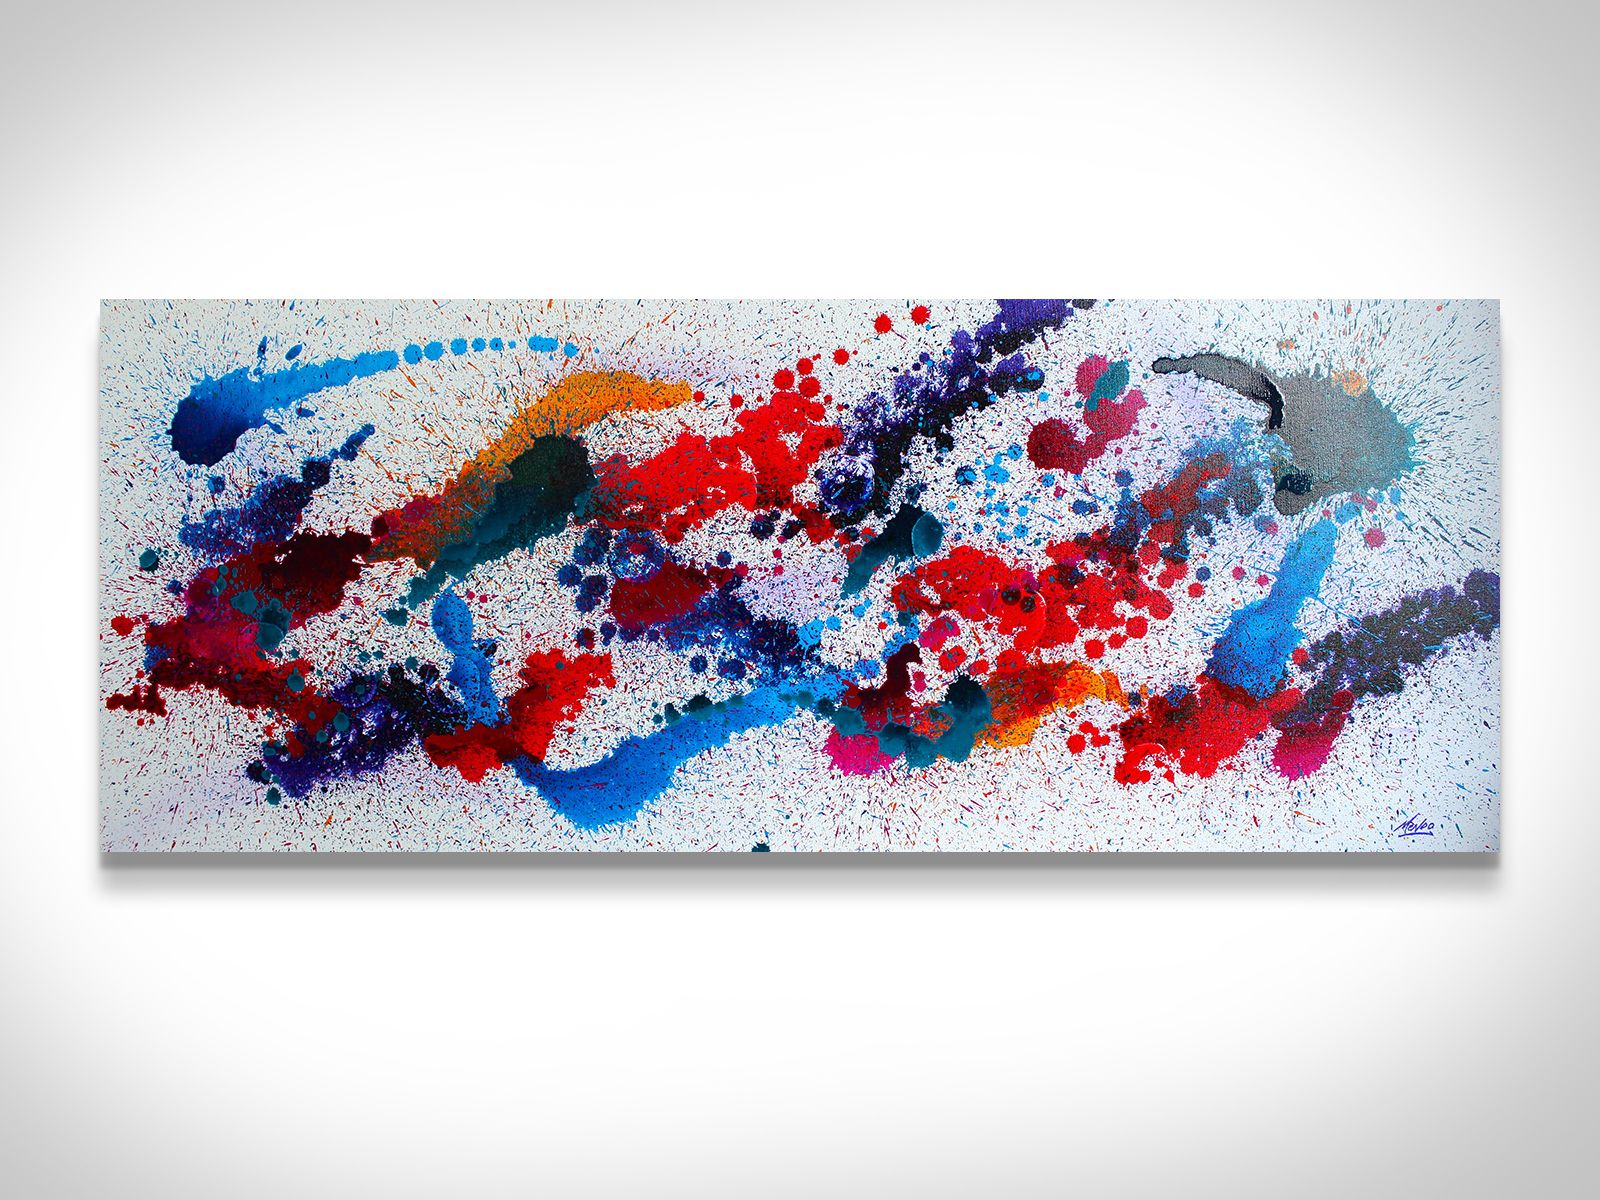 Wall Paintings For Sale Colorful Wall Painting By Mendo Moving Colours Rainbow Colored